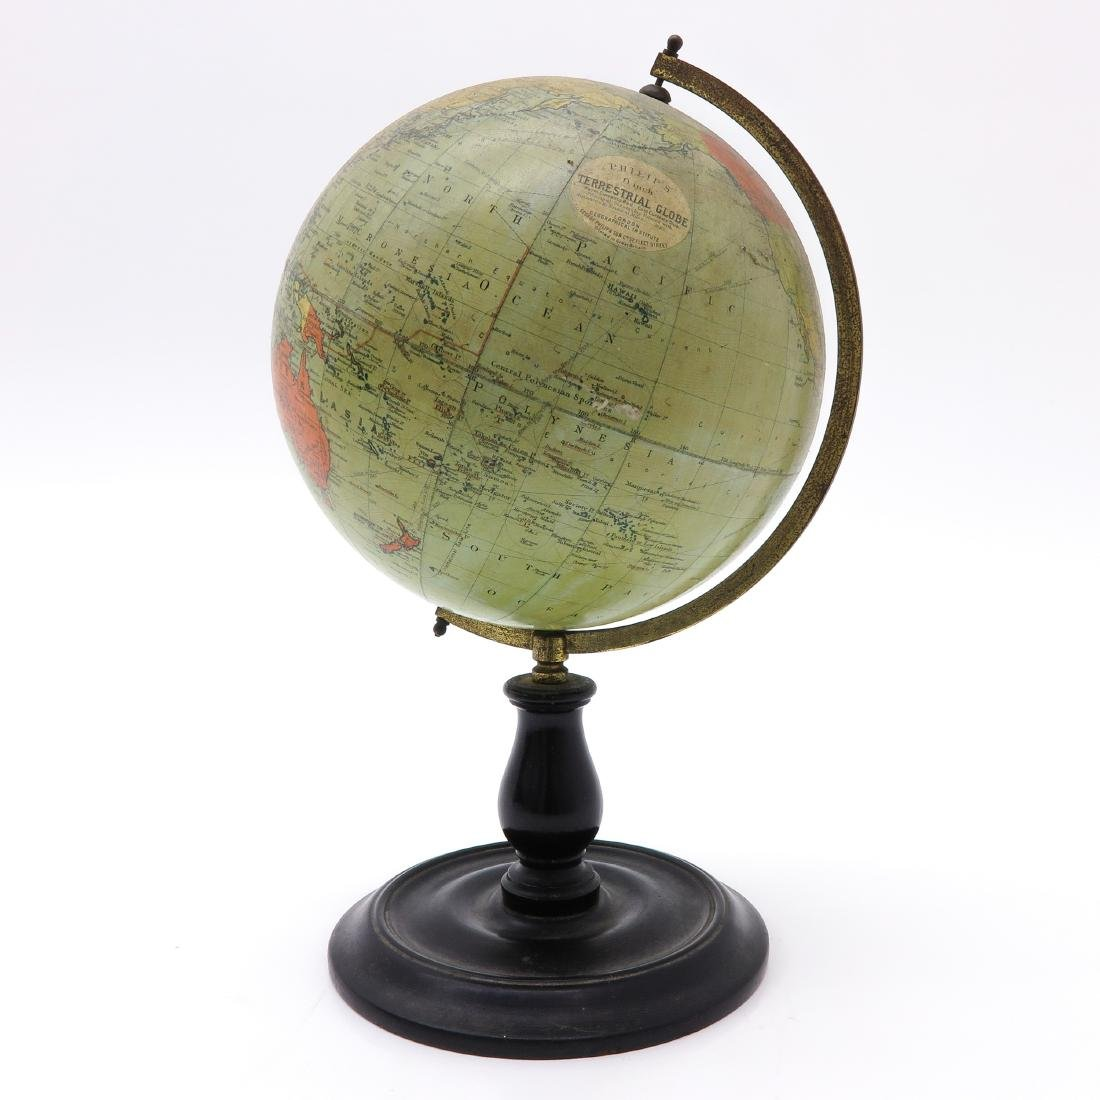 A George Philip & Son Globe 1930